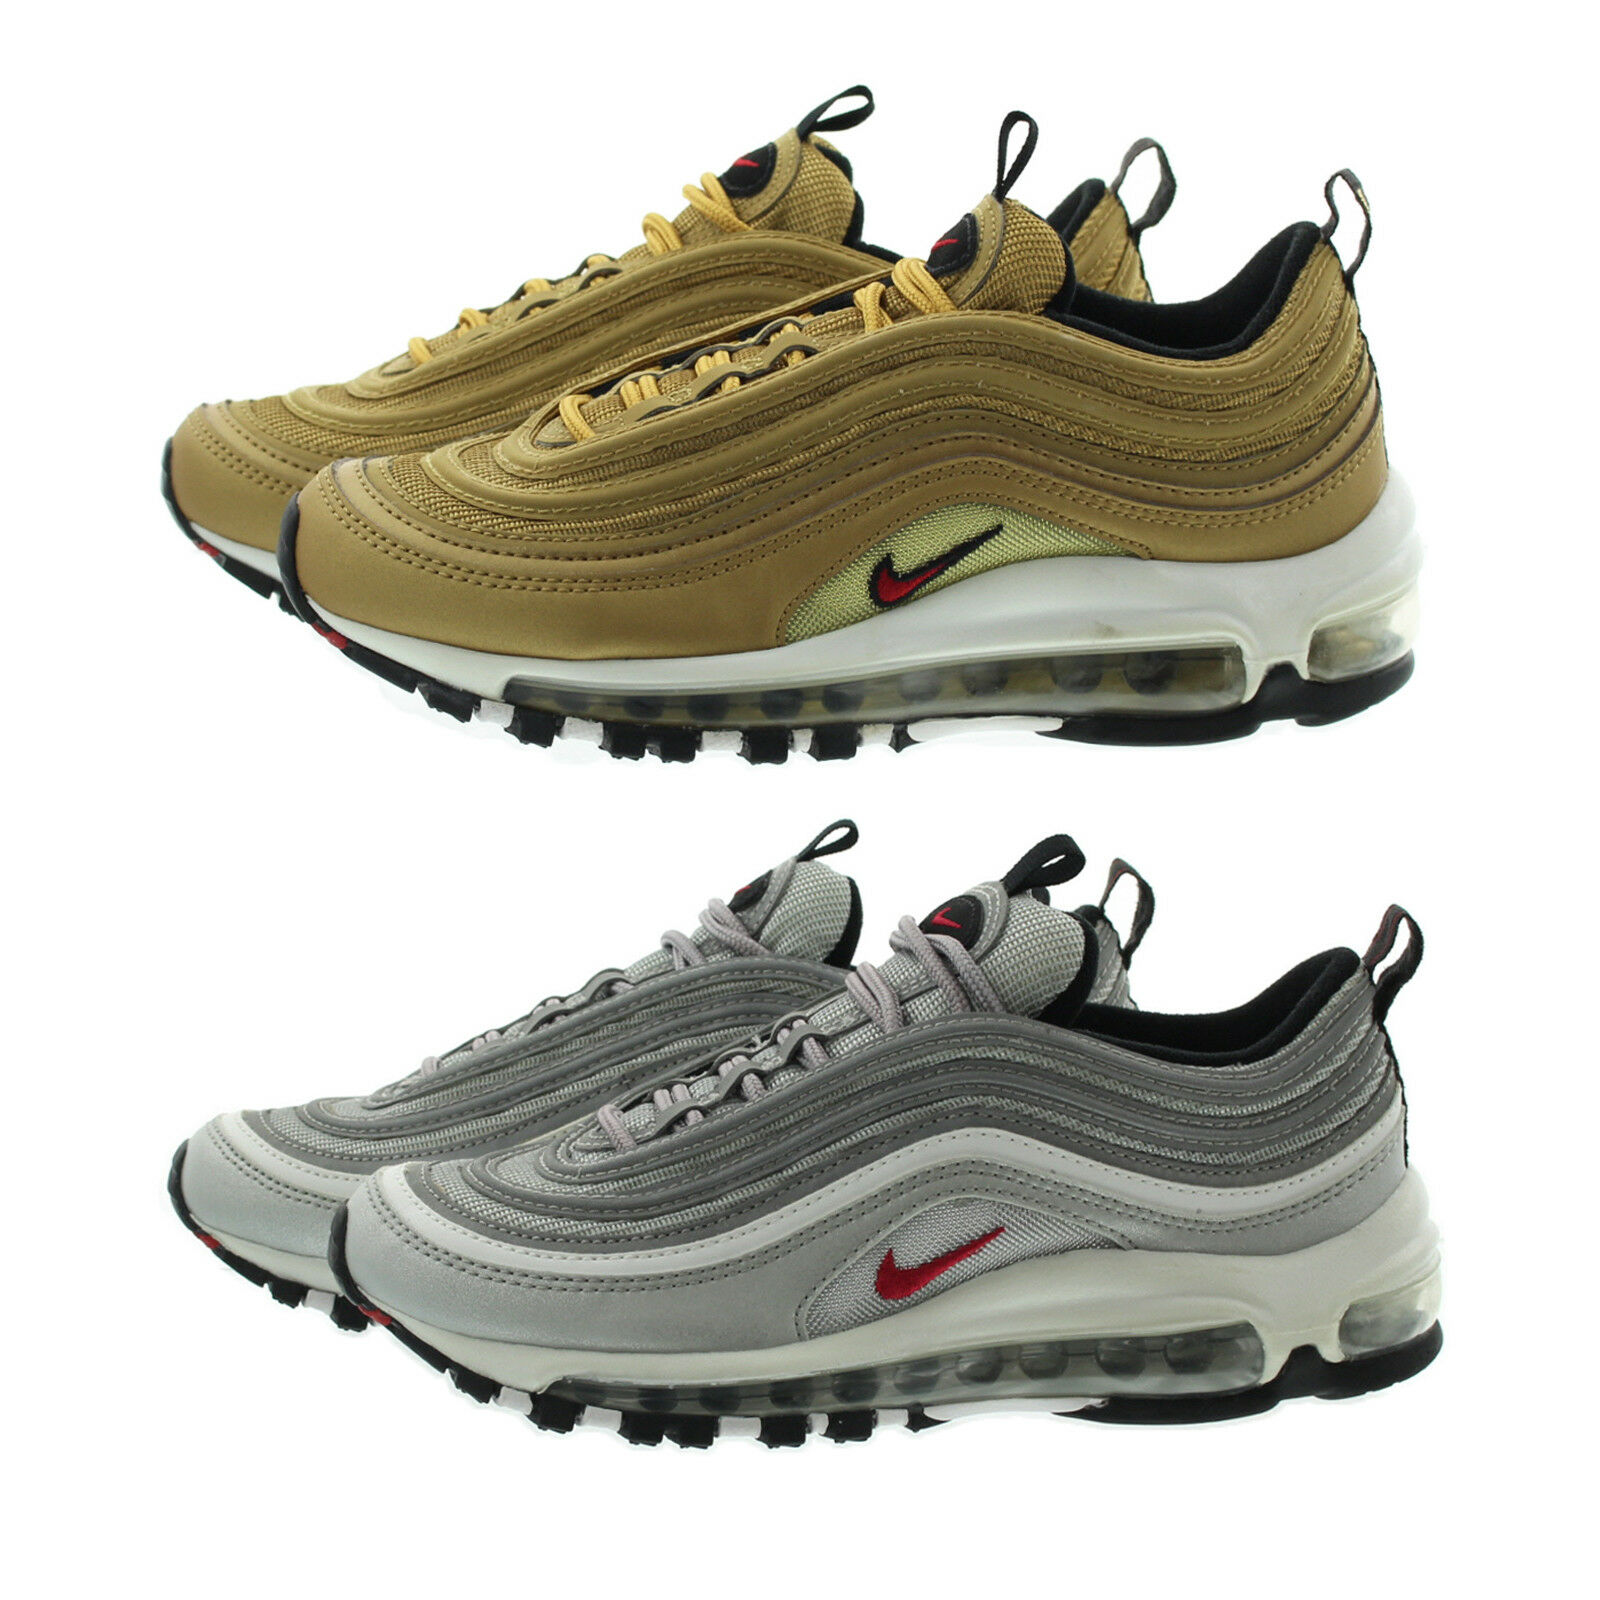 Nike 885691 Womens Air Max 97 Original Quick Strike Low Top shoes Sneakers